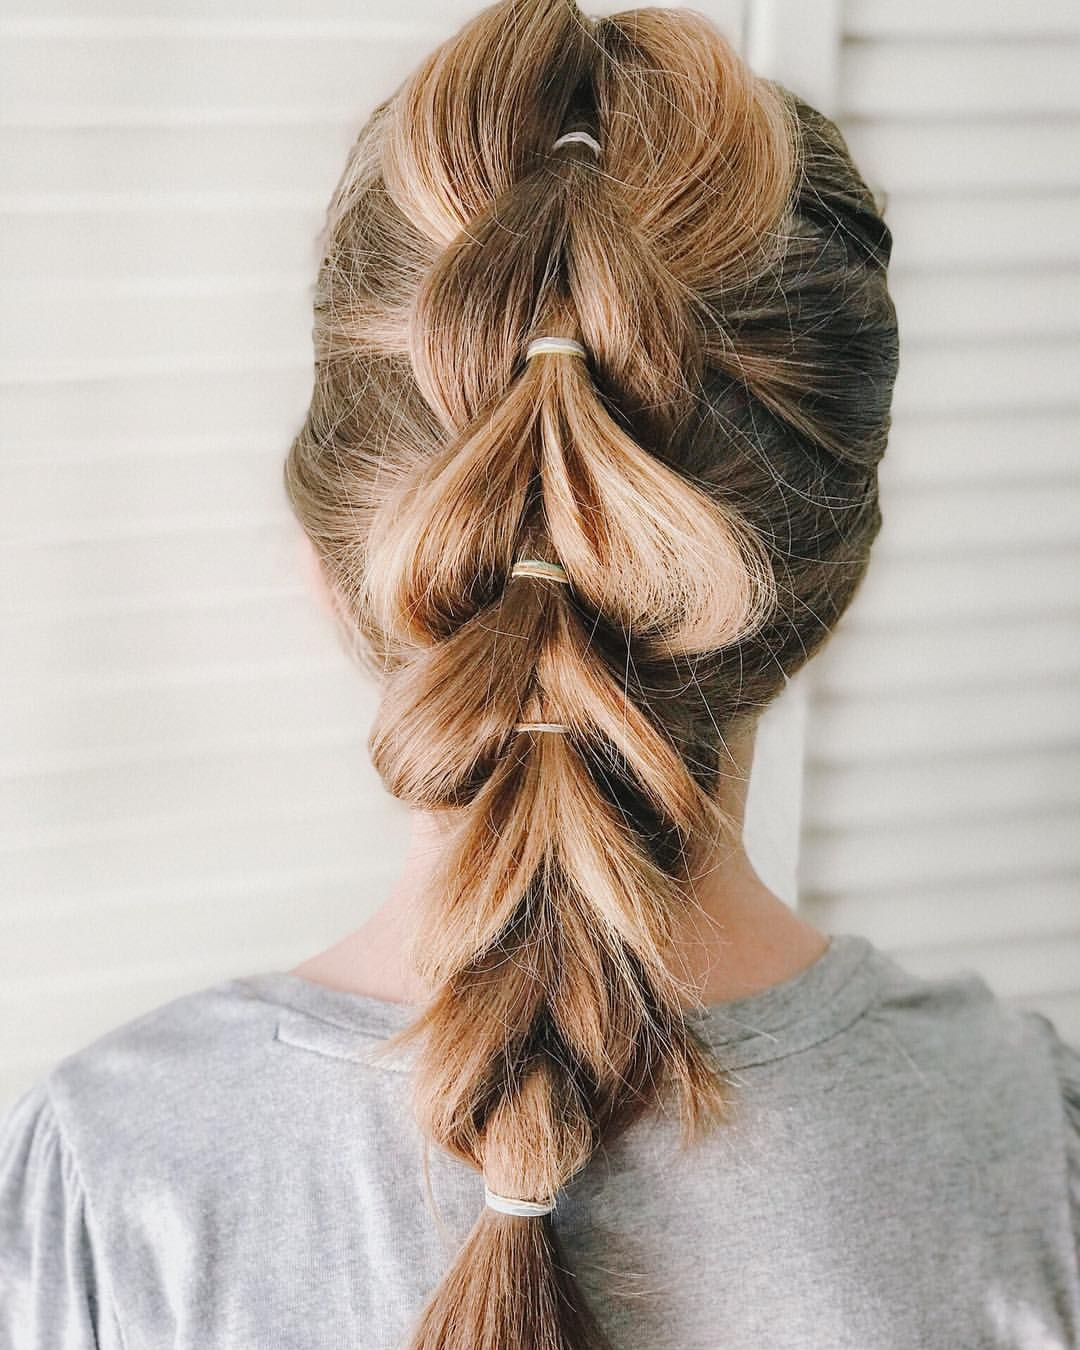 My First Time Doing A Pull Through Braid This Weekend On My Niece And I M Pleased With How It Turned Out We Ha Pulled Back Hairstyles Pull Through Braid Hair